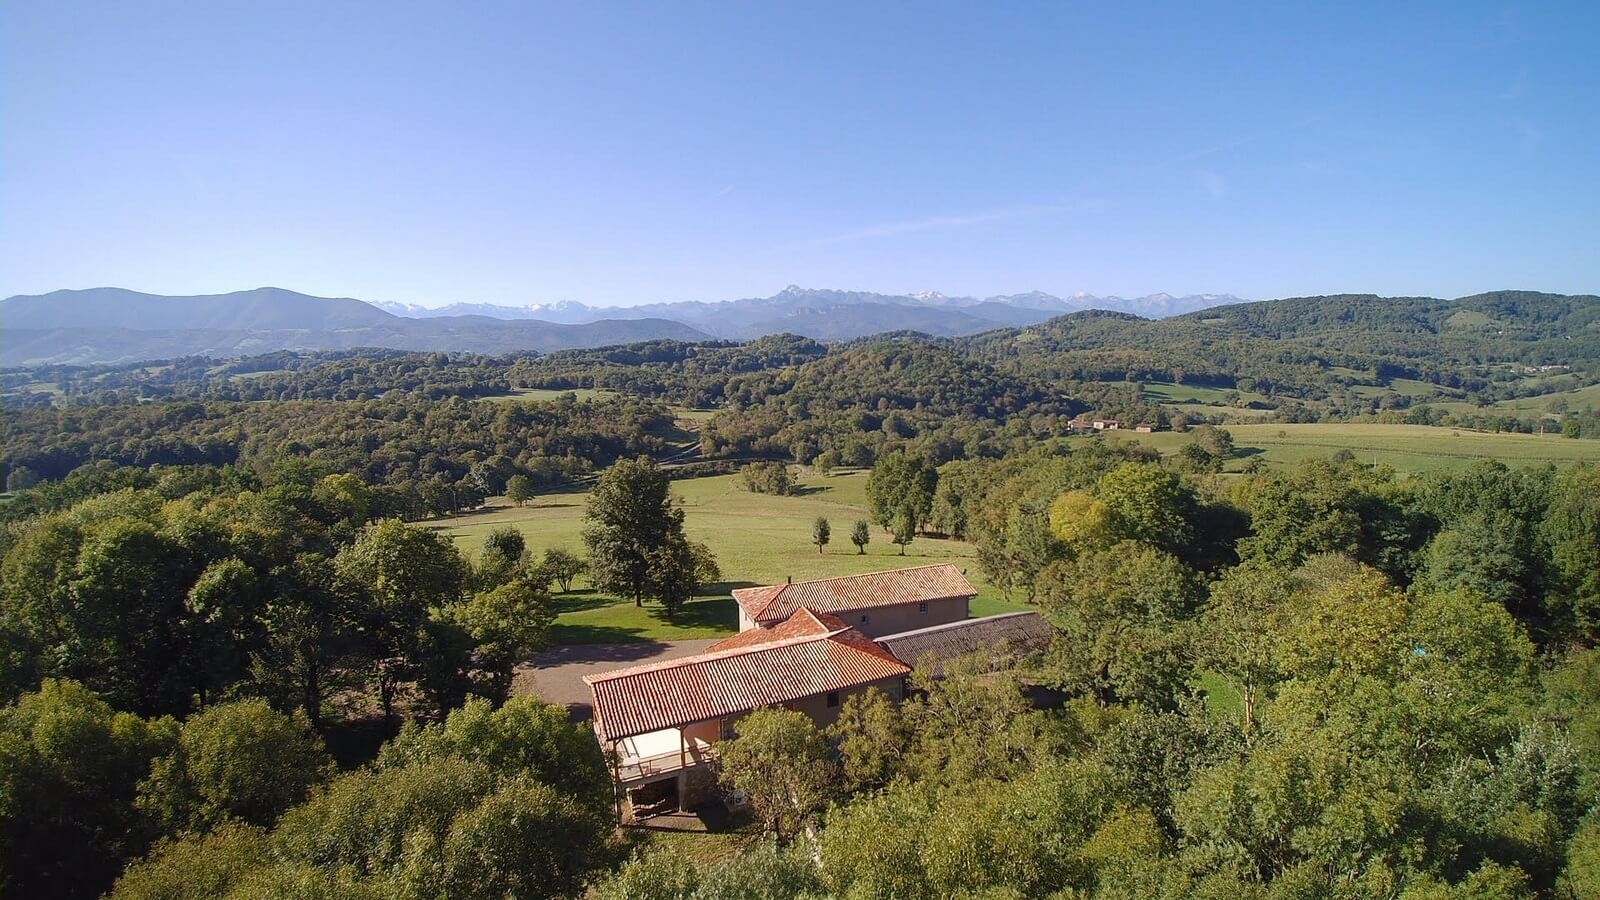 Aerial view of the Caville gite